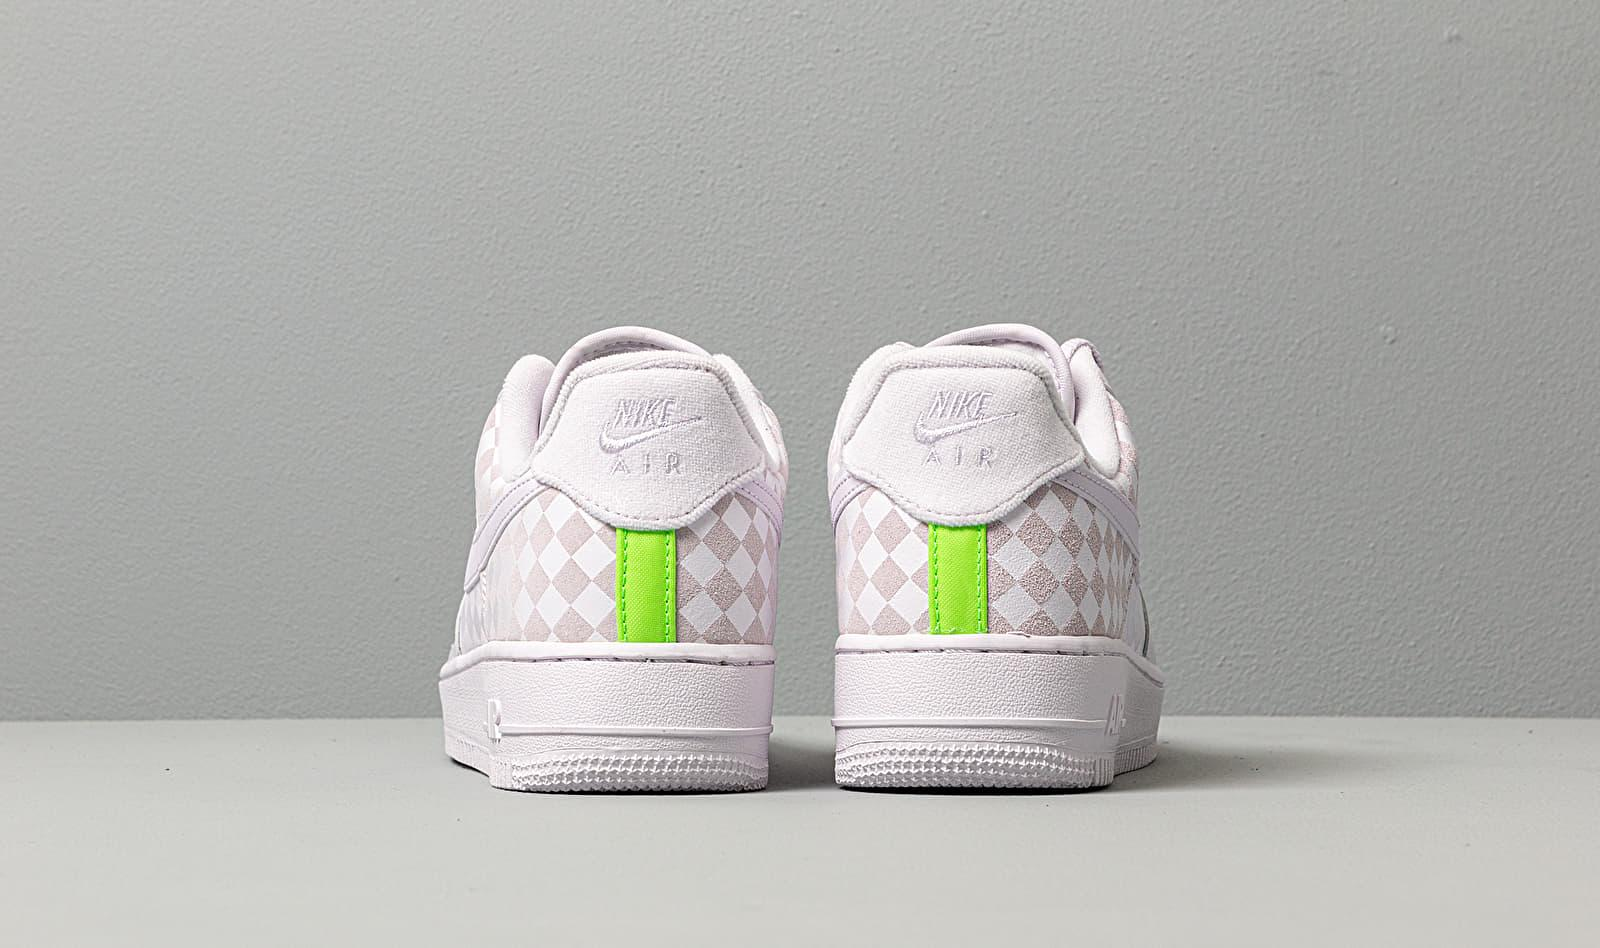 W Air Force 1 Low Barely Grape/ Barely Grape Nike